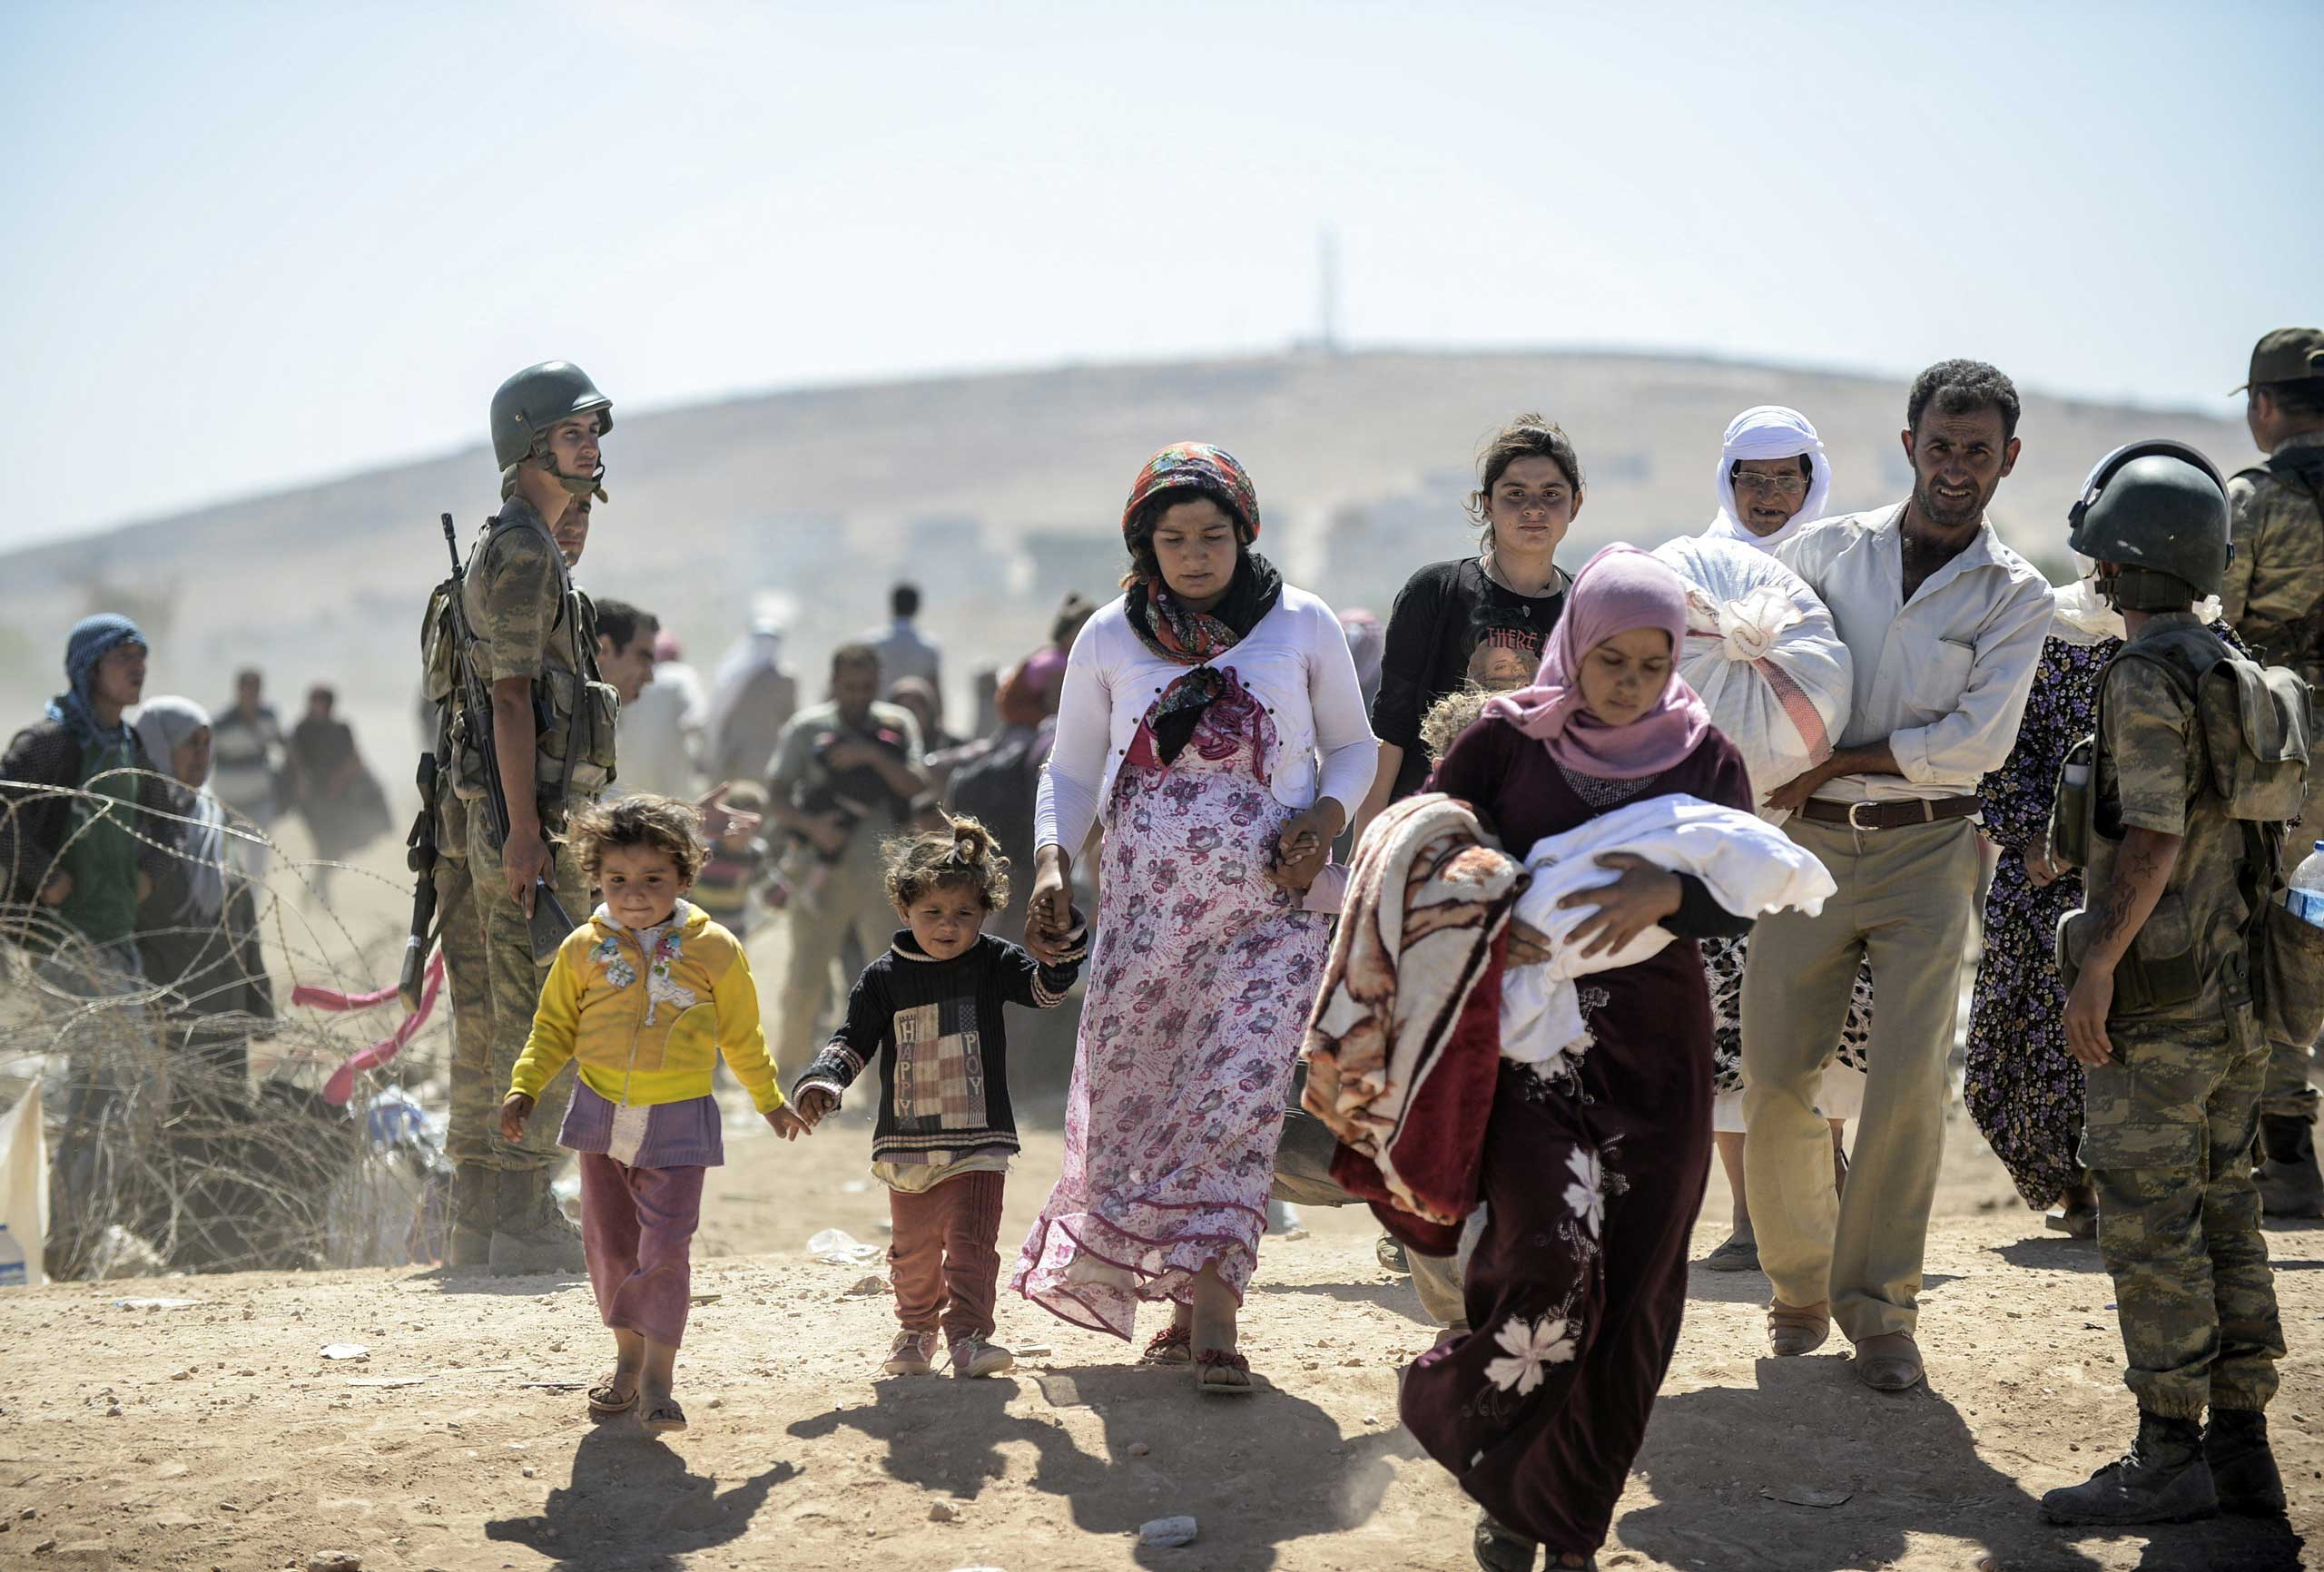 Syrian Kurds cross the border from Syria into Turkey near the southeastern town of Suruc in Sanliurfa province, on Sept. 20, 2014.